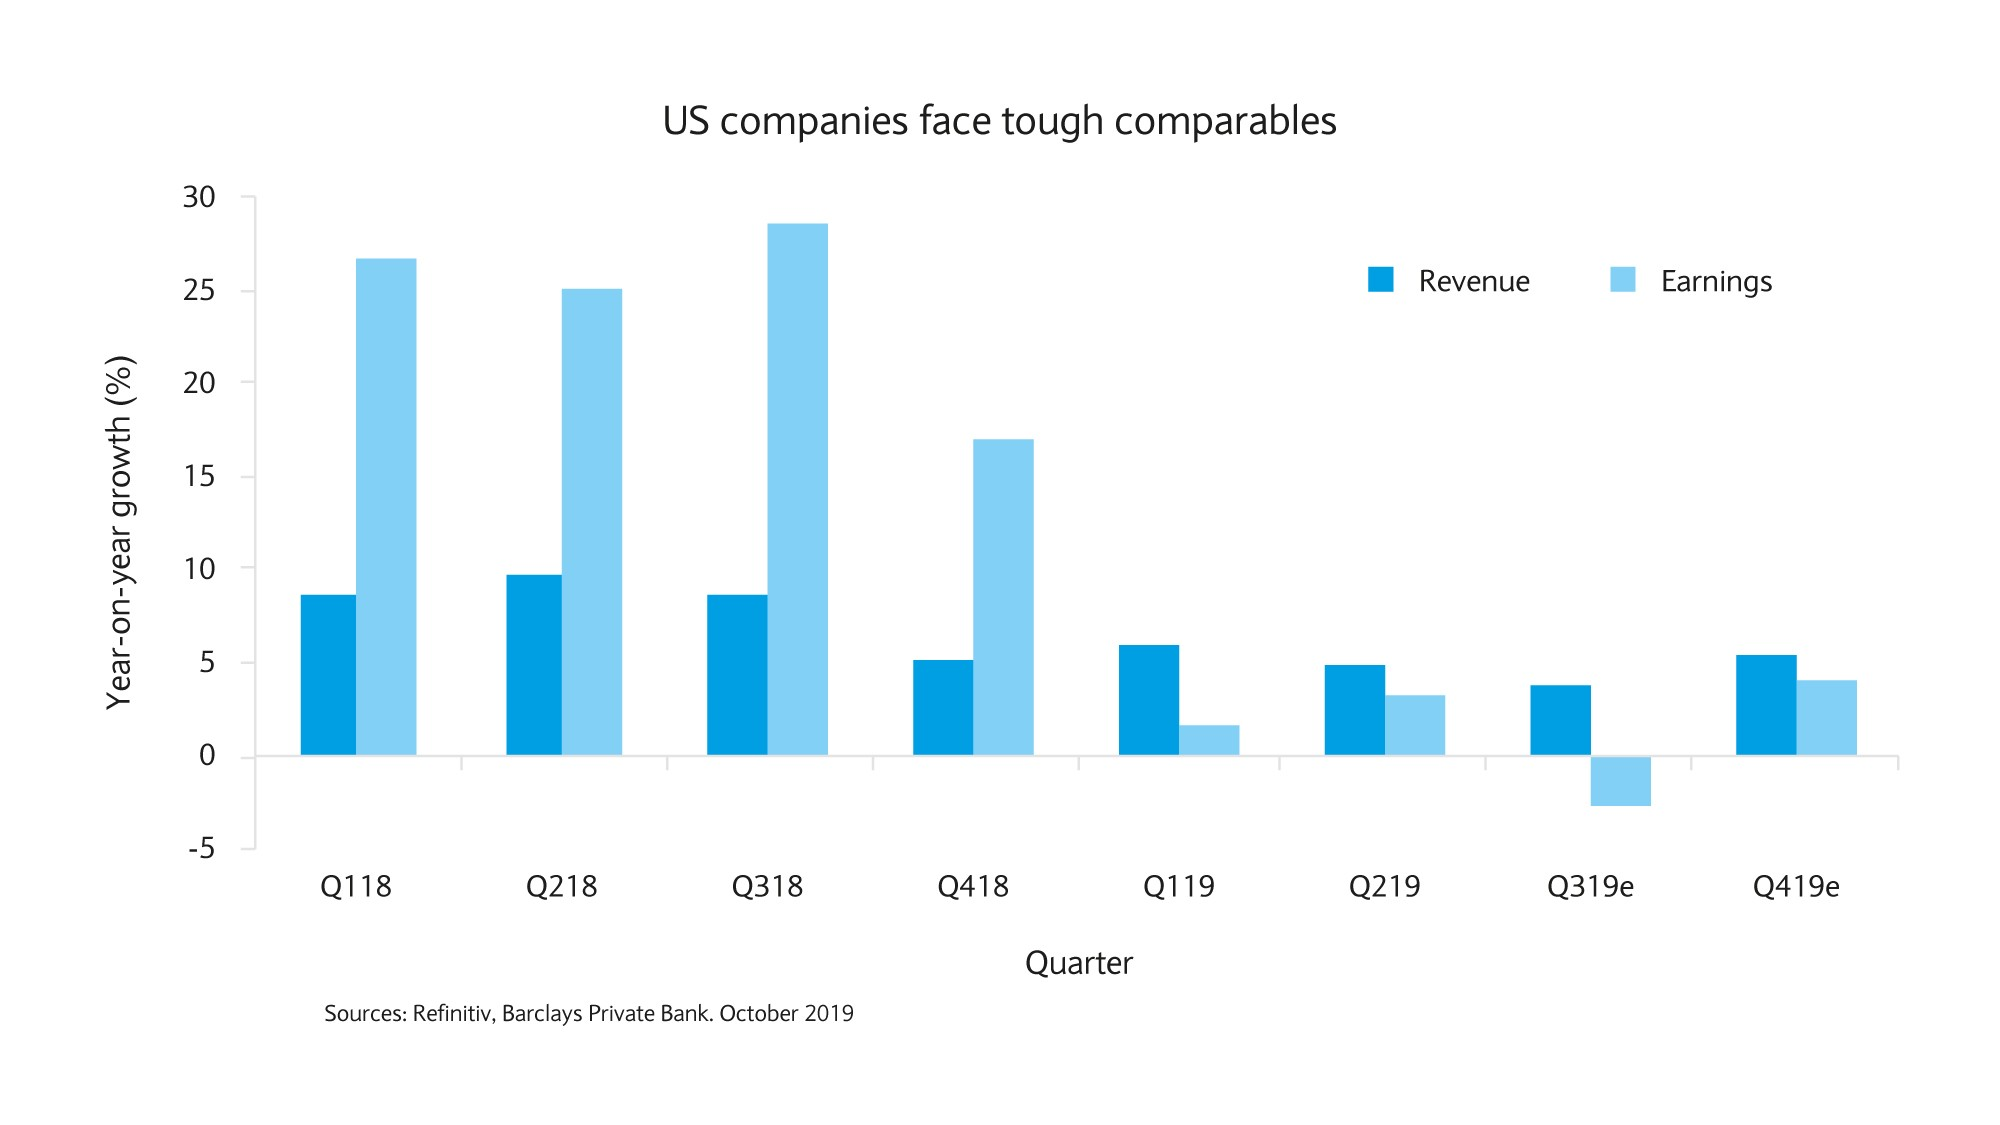 US companies face tough 2018 comparables